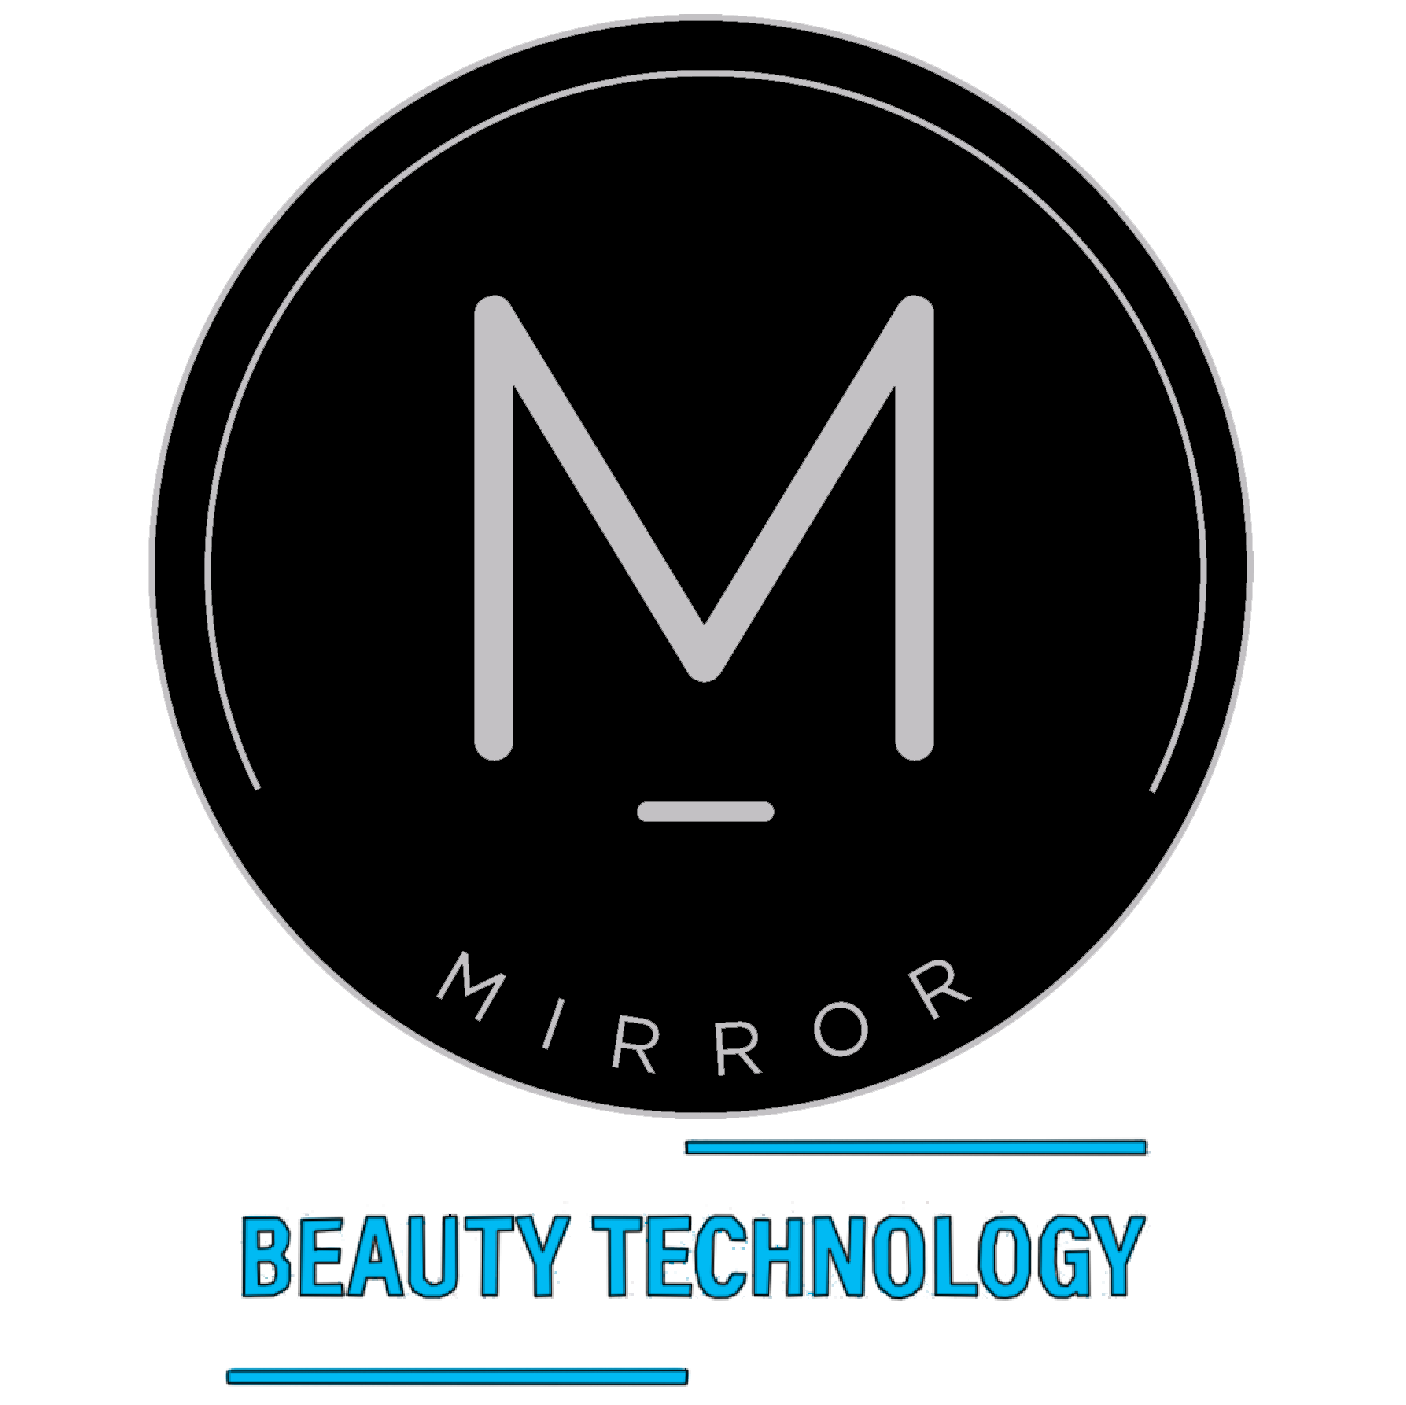 Beauty technology